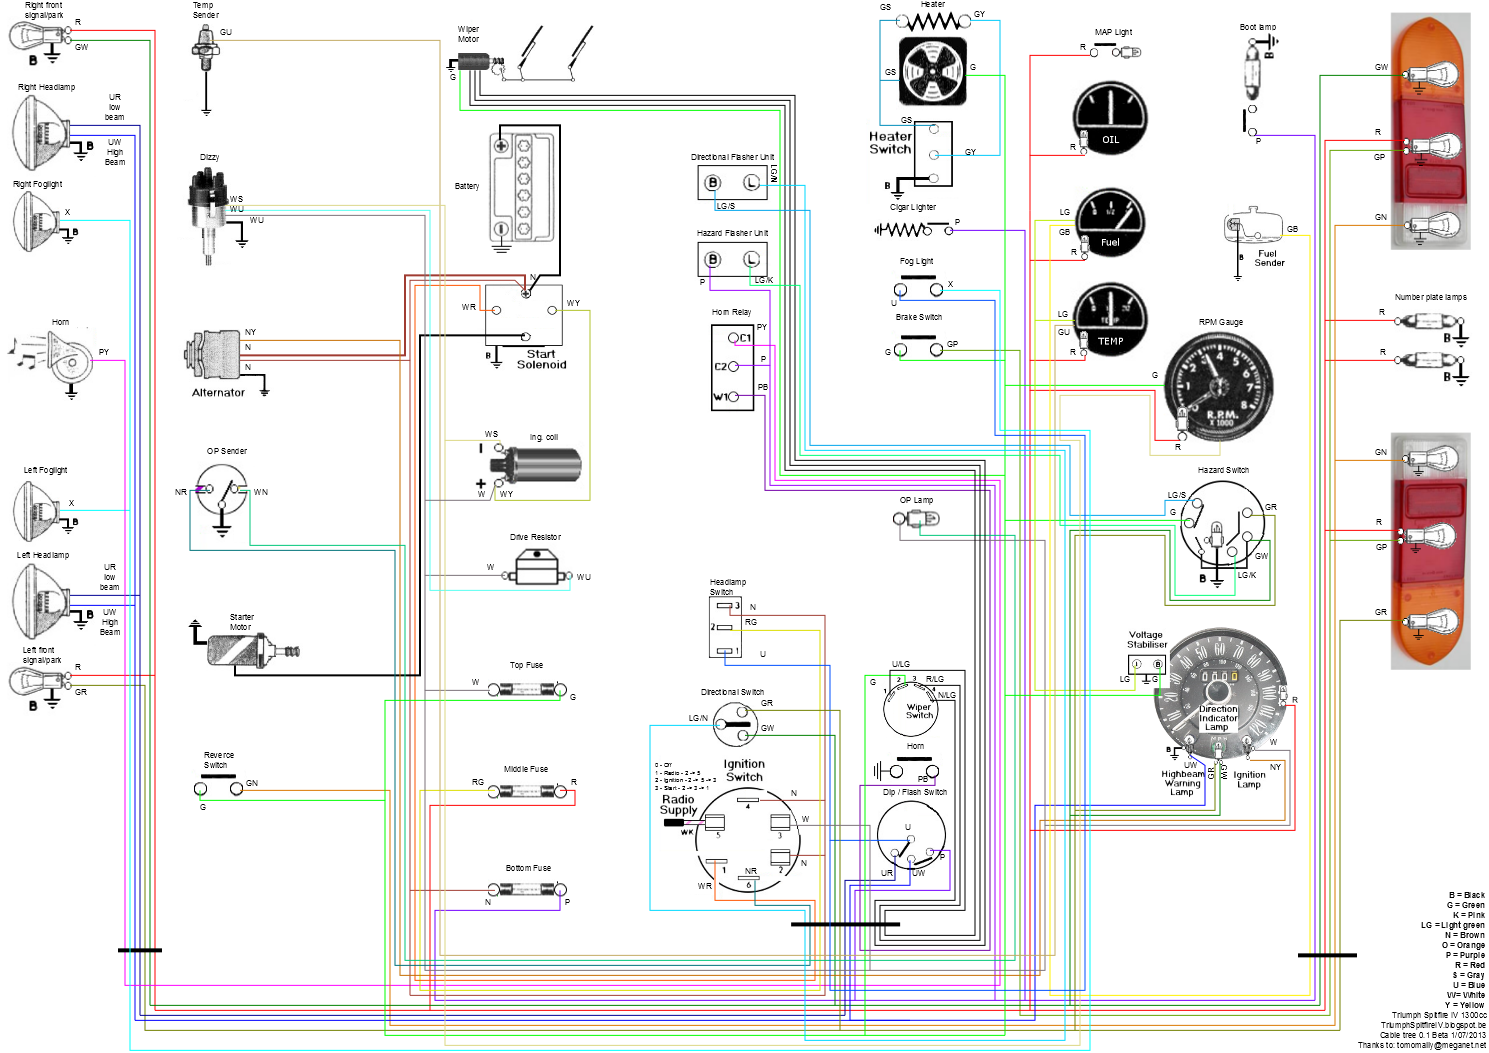 small resolution of 1980 spitfire wiring diagram wiring diagram paper spitfire 1500 wire harness diagram